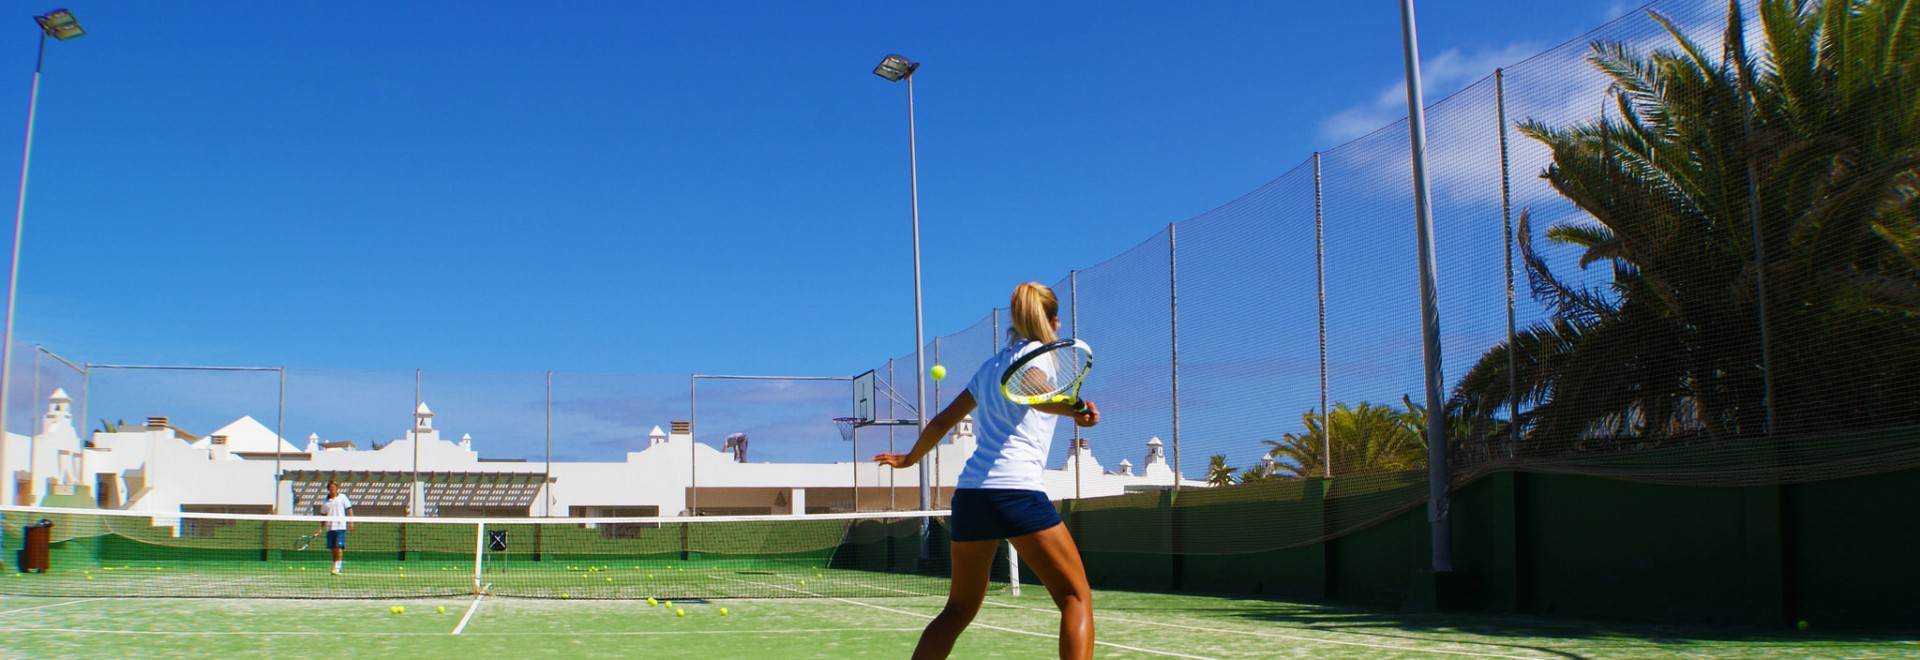 Couples Tennis Training - Corralejo Tennis Academy, Canary Islands